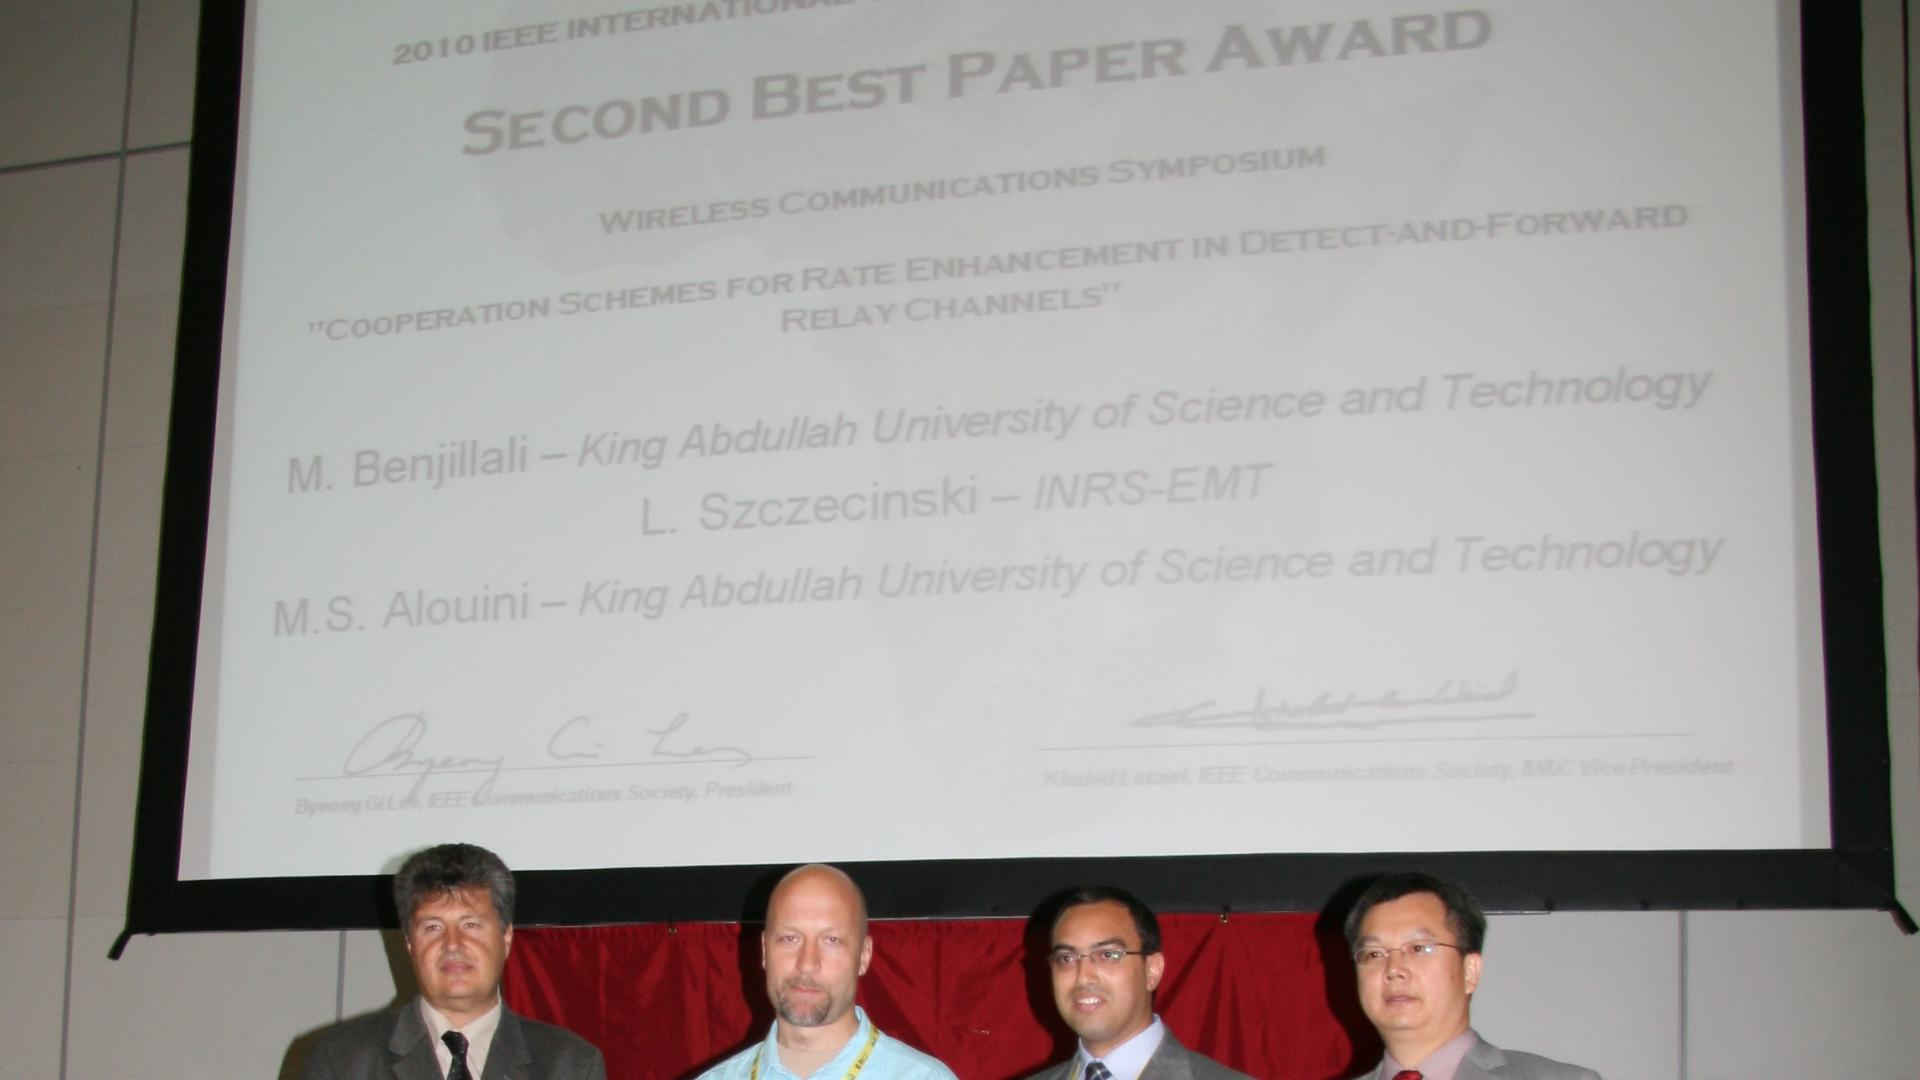 Mustapha Benjillali Receiving Second Best Paper Award at ICC 2010 (May 2010)